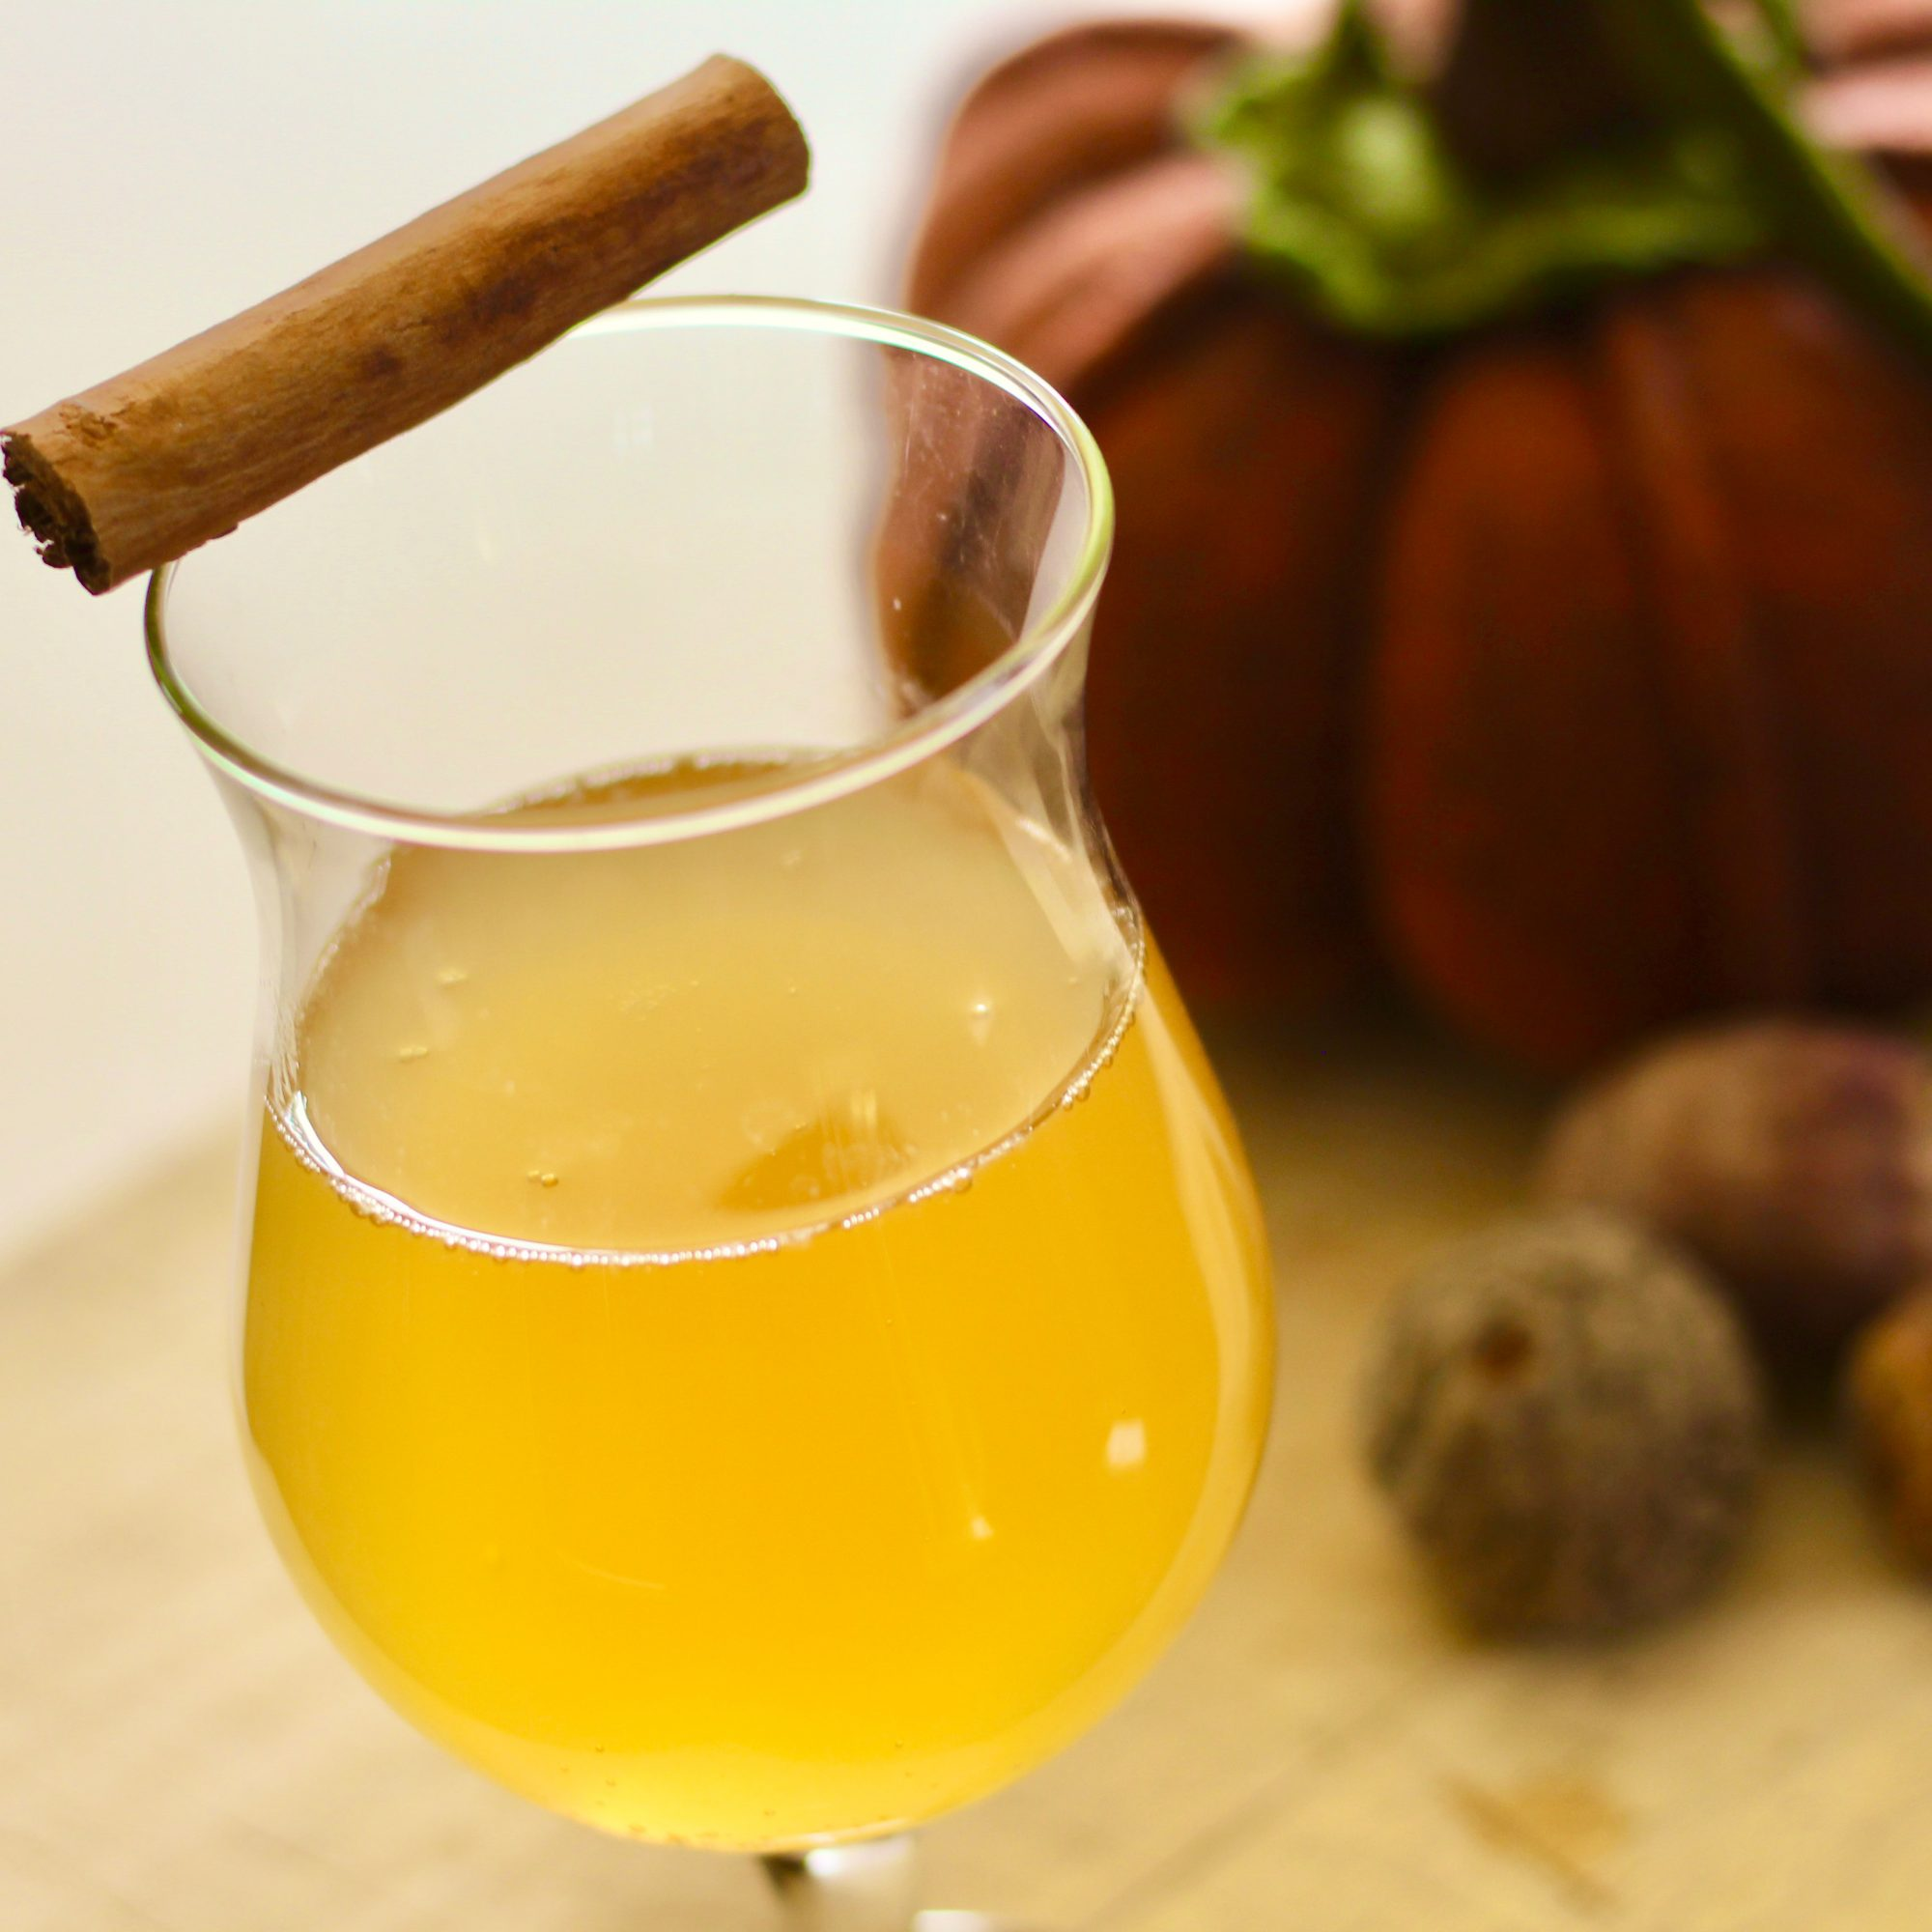 13 Spiked Apple Cider Cocktails to Celebrate the Season